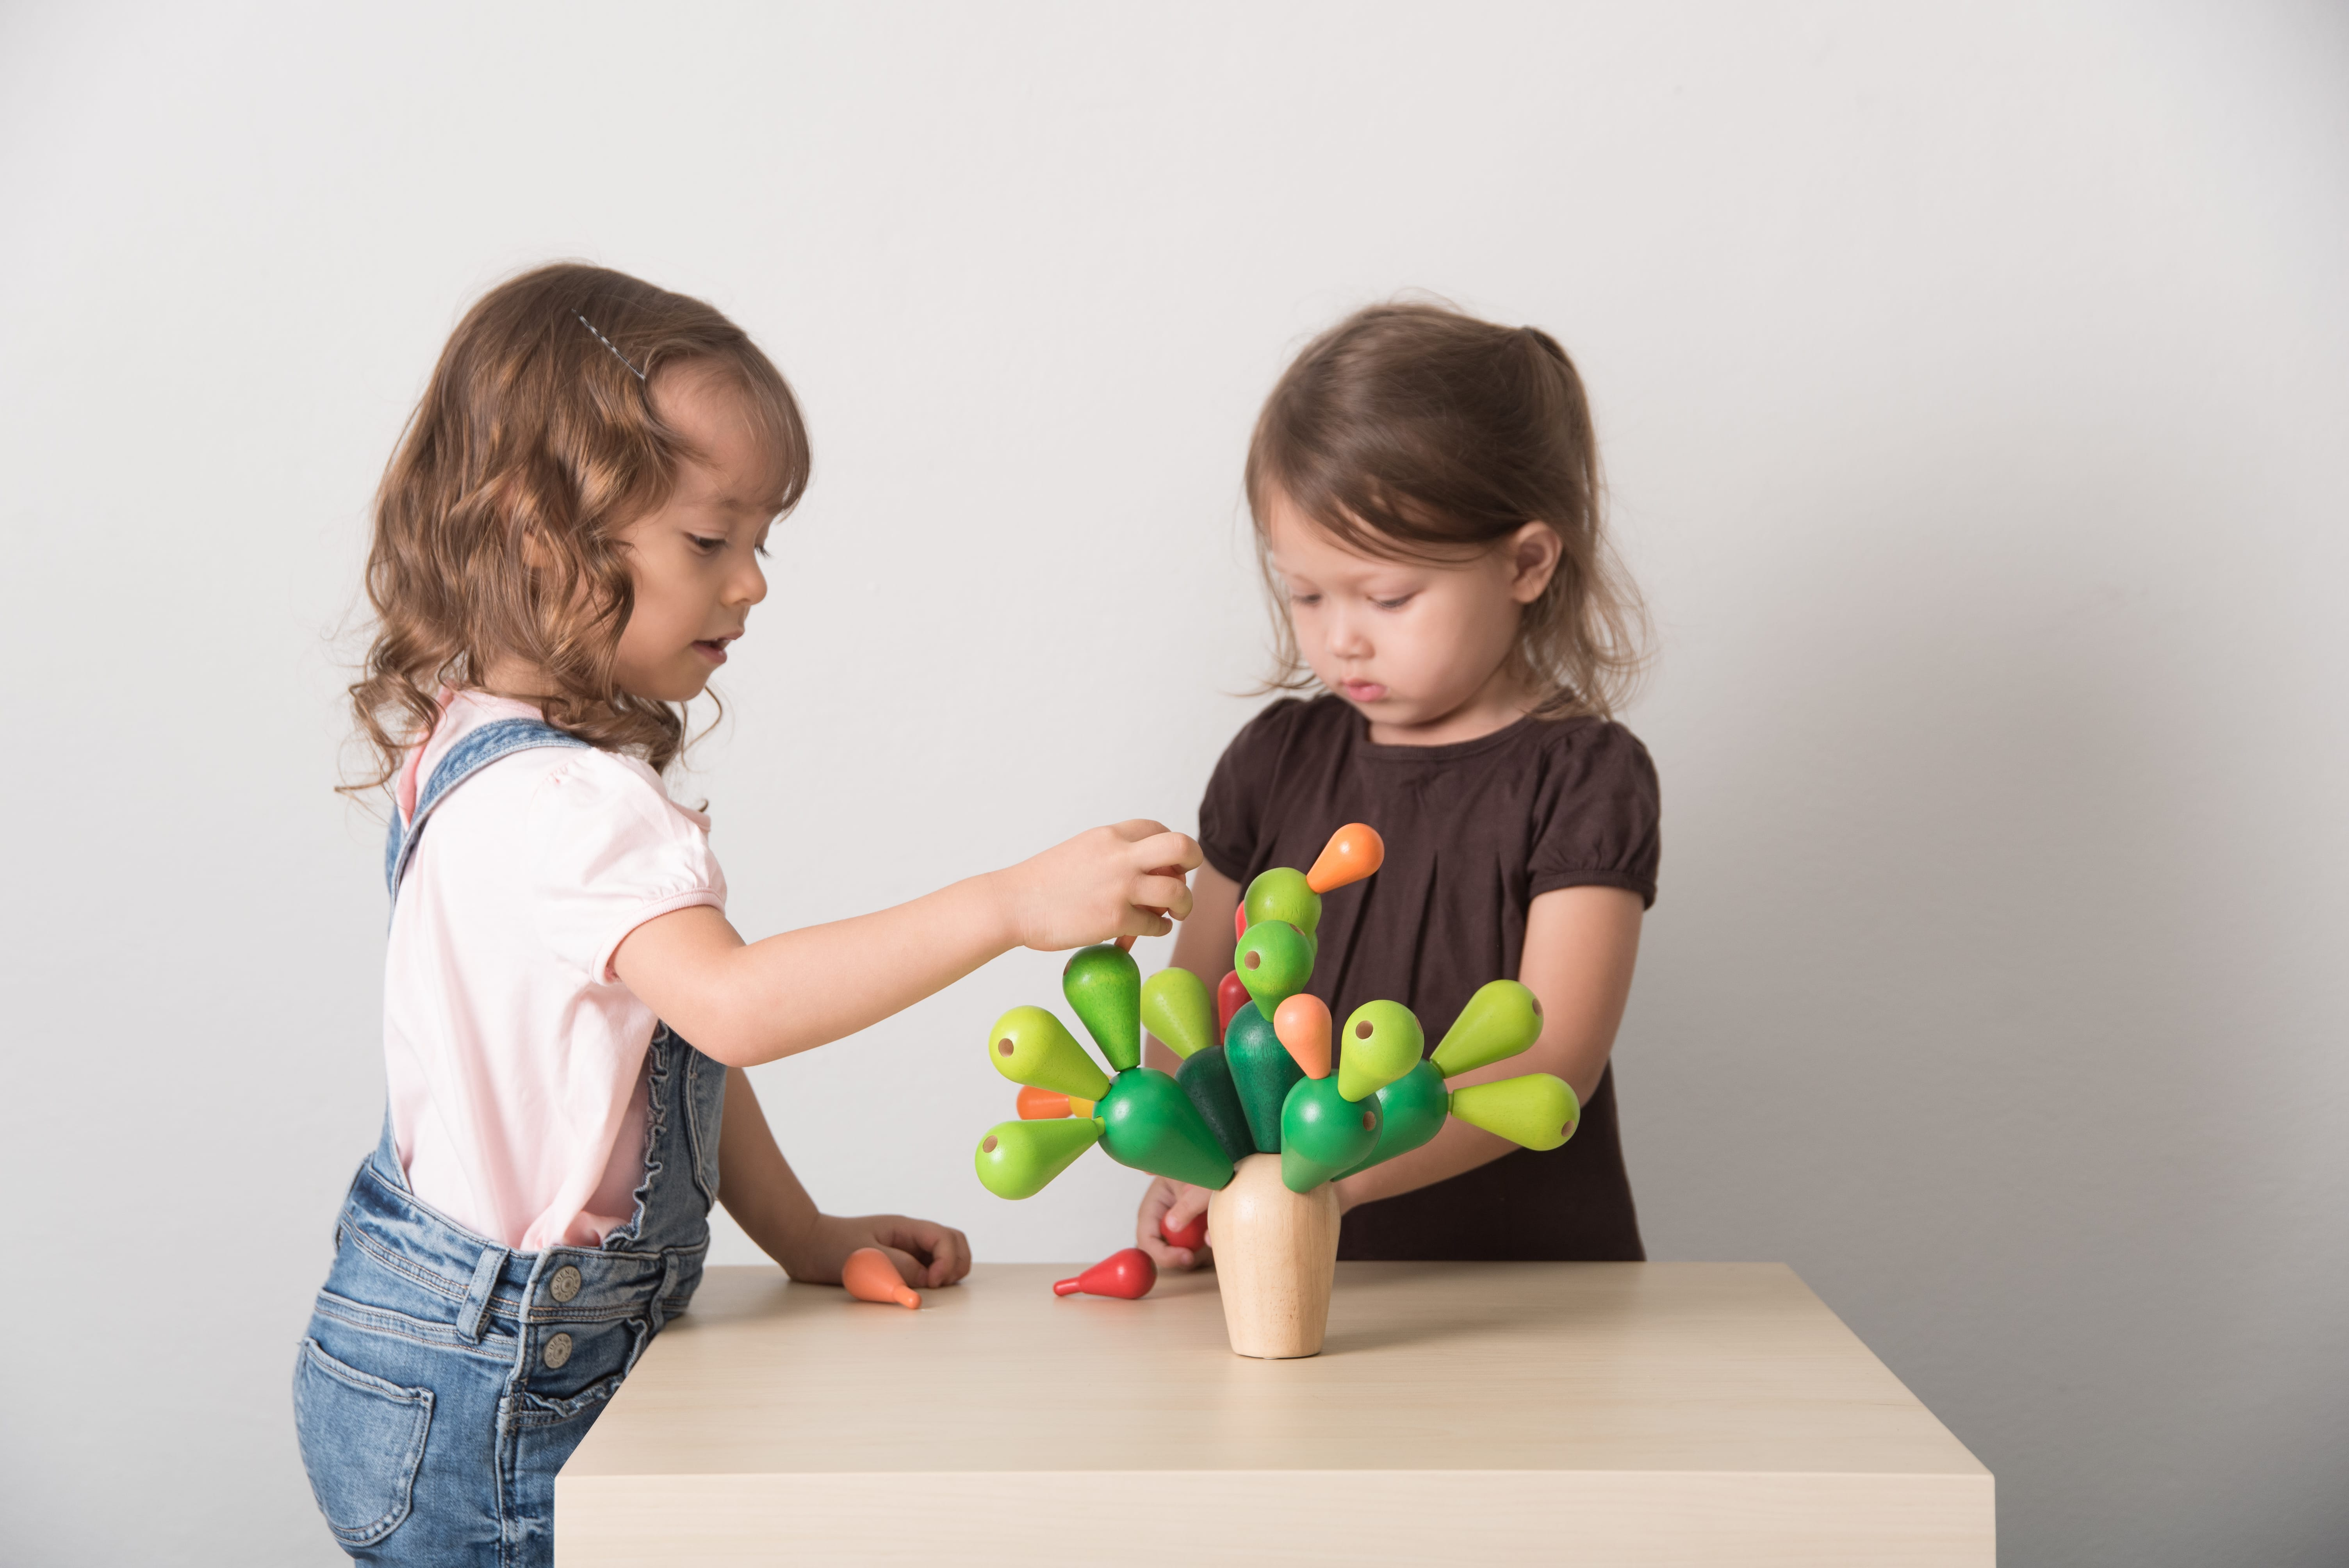 4101_PlanToys_BALANCING_CACTUS_Game_and_Puzzles_Concentration_Logical_Coordination_Problem_Solving_Language_and_Communications_Mathematical_3yrs_Wooden_toys_Education_toys_Safety_Toys_Non-toxic_7.jpg